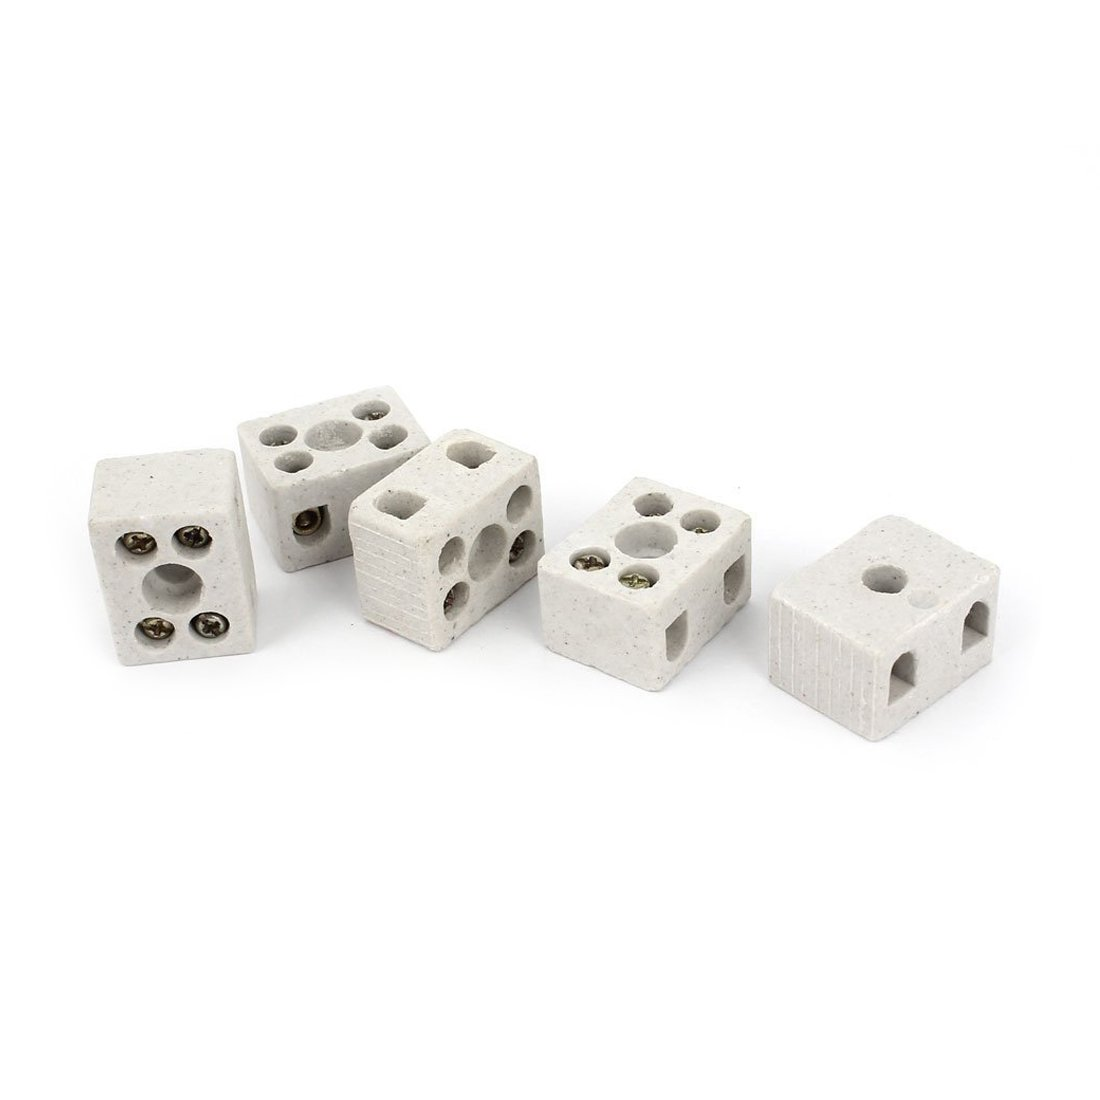 SODIAL(R) 5 Pcs 2 Way 5 Hole 2W5H Ceramic Terminal Block Wire Connector 5A